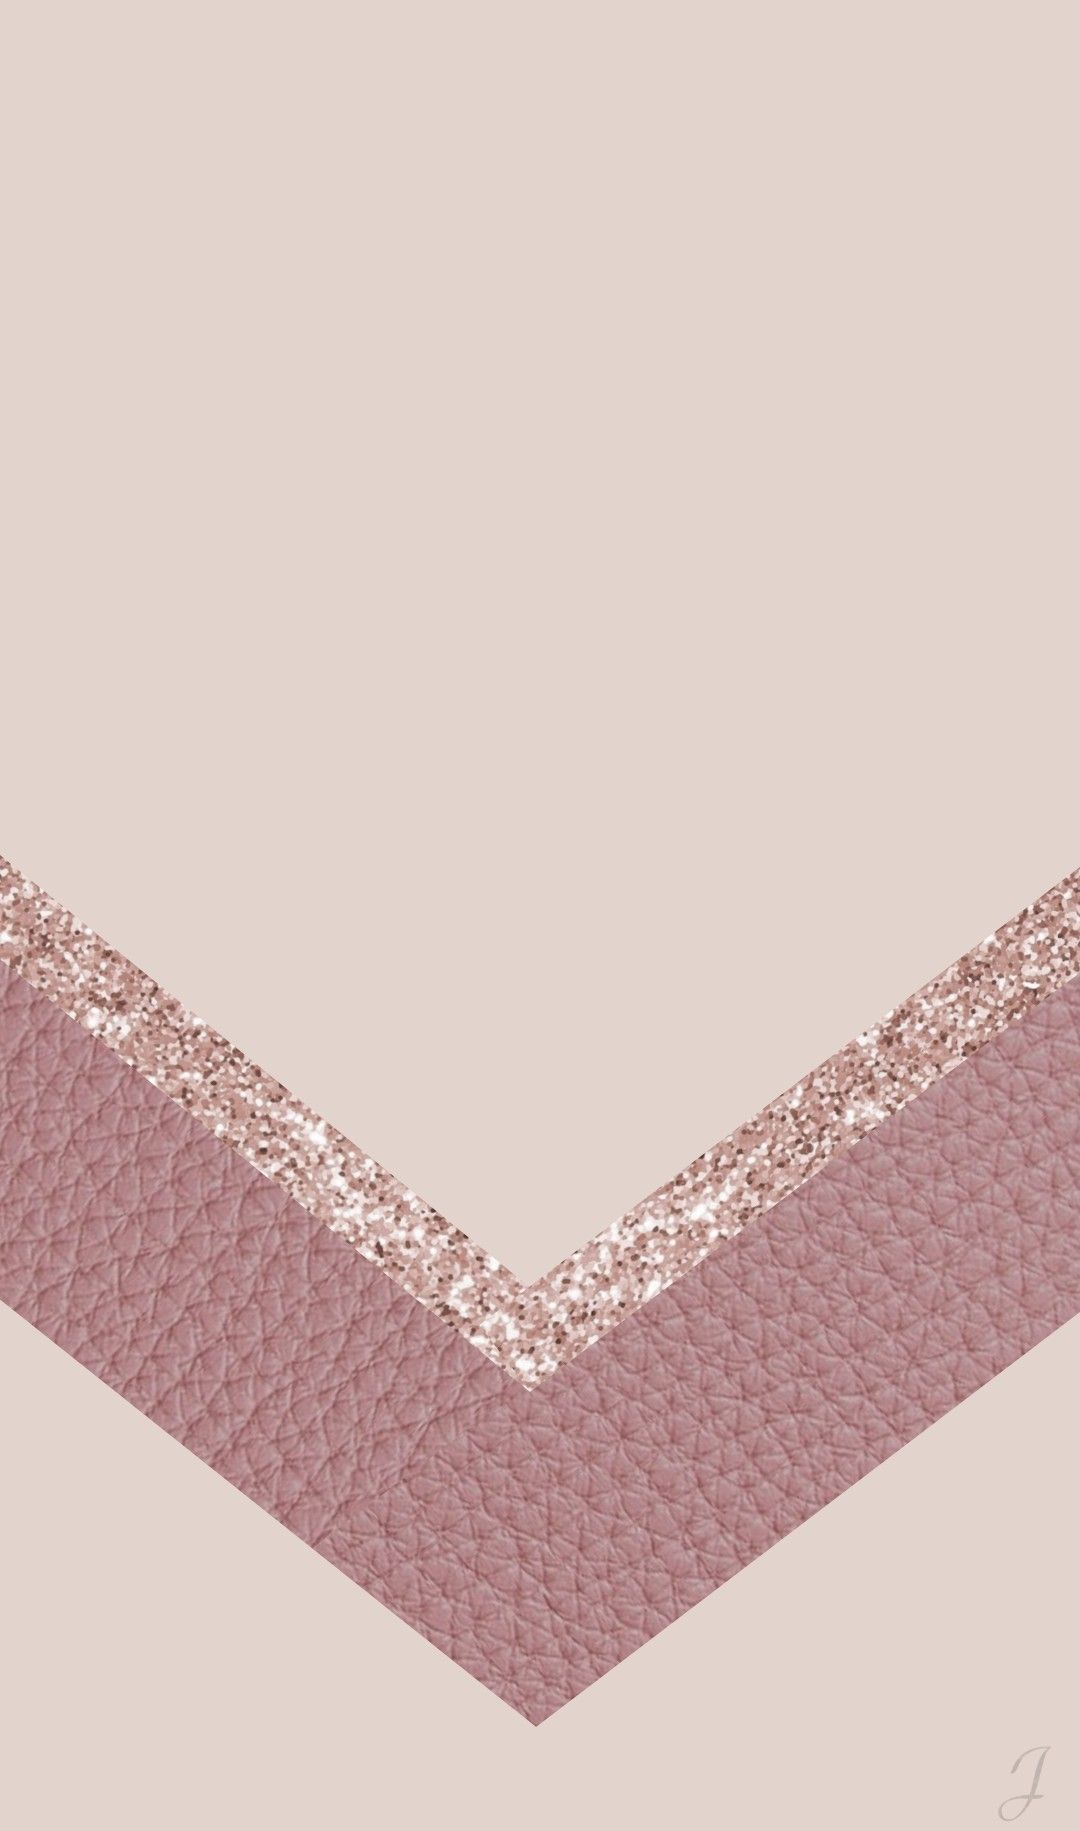 Beige Rose Gold Glitter And Pink Leather Pink Wallpaper Iphone Gold Wallpaper Iphone Phone Wallpaper Patterns